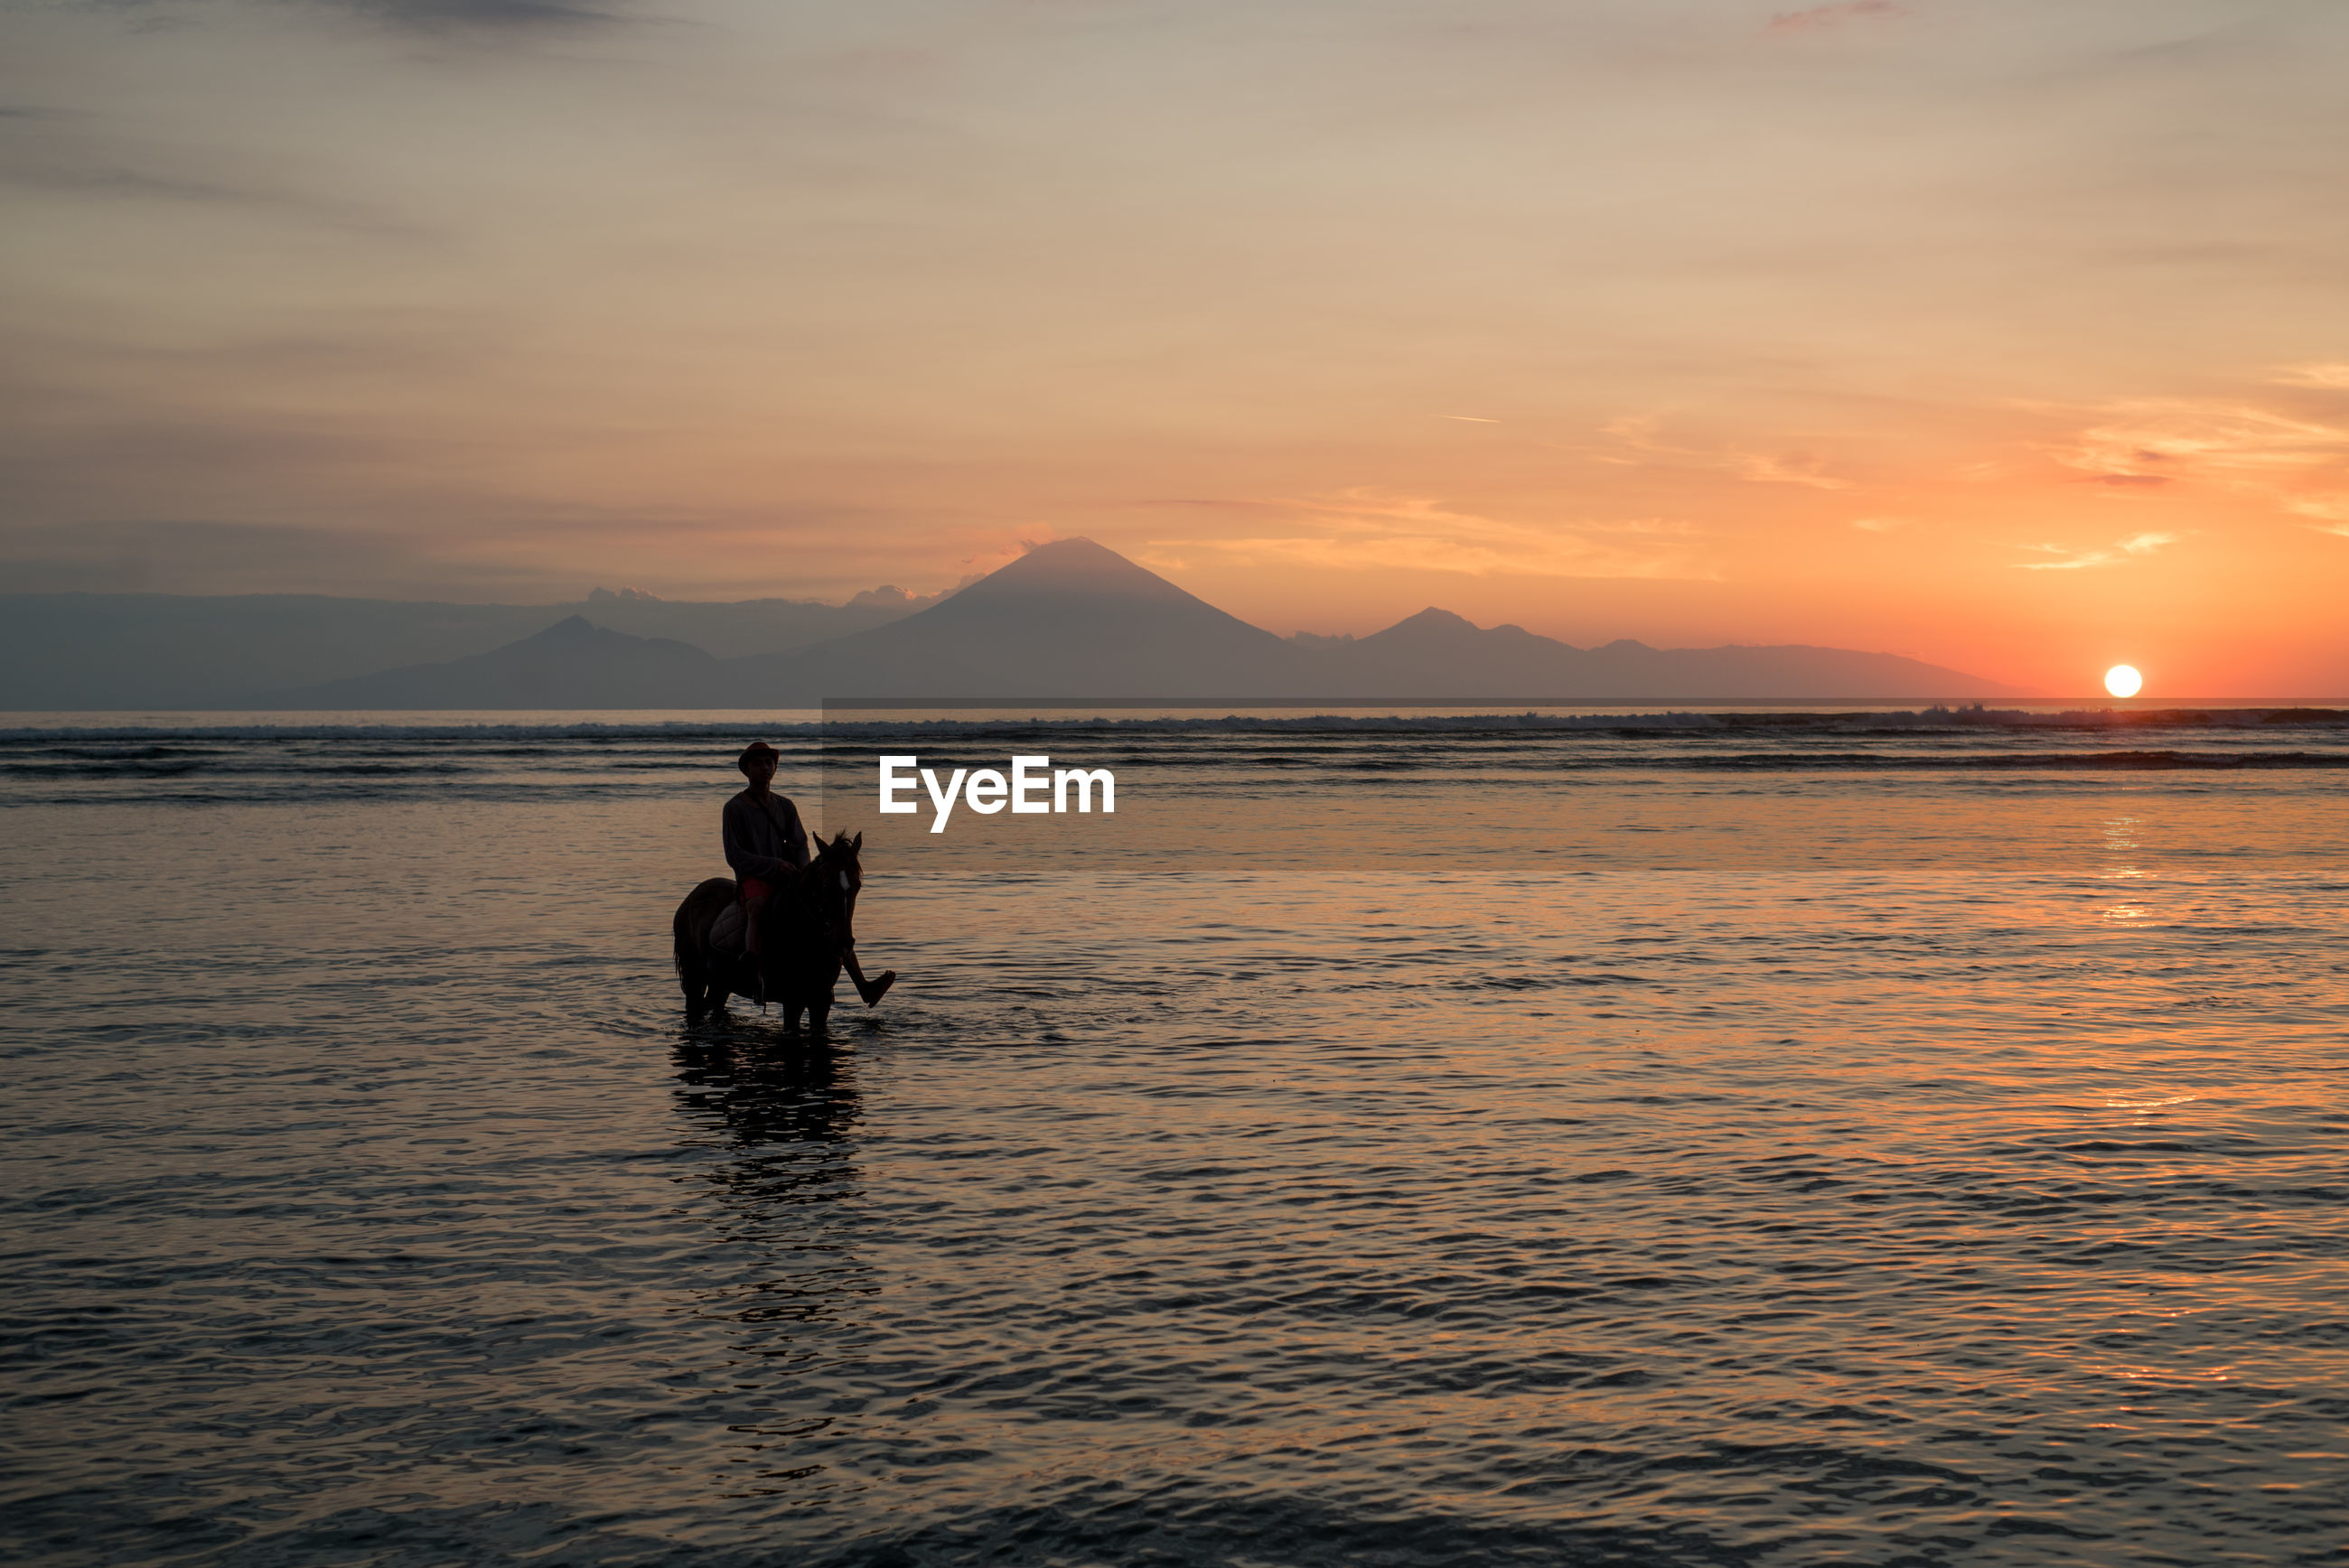 Person on horse in sea against sky during sunset